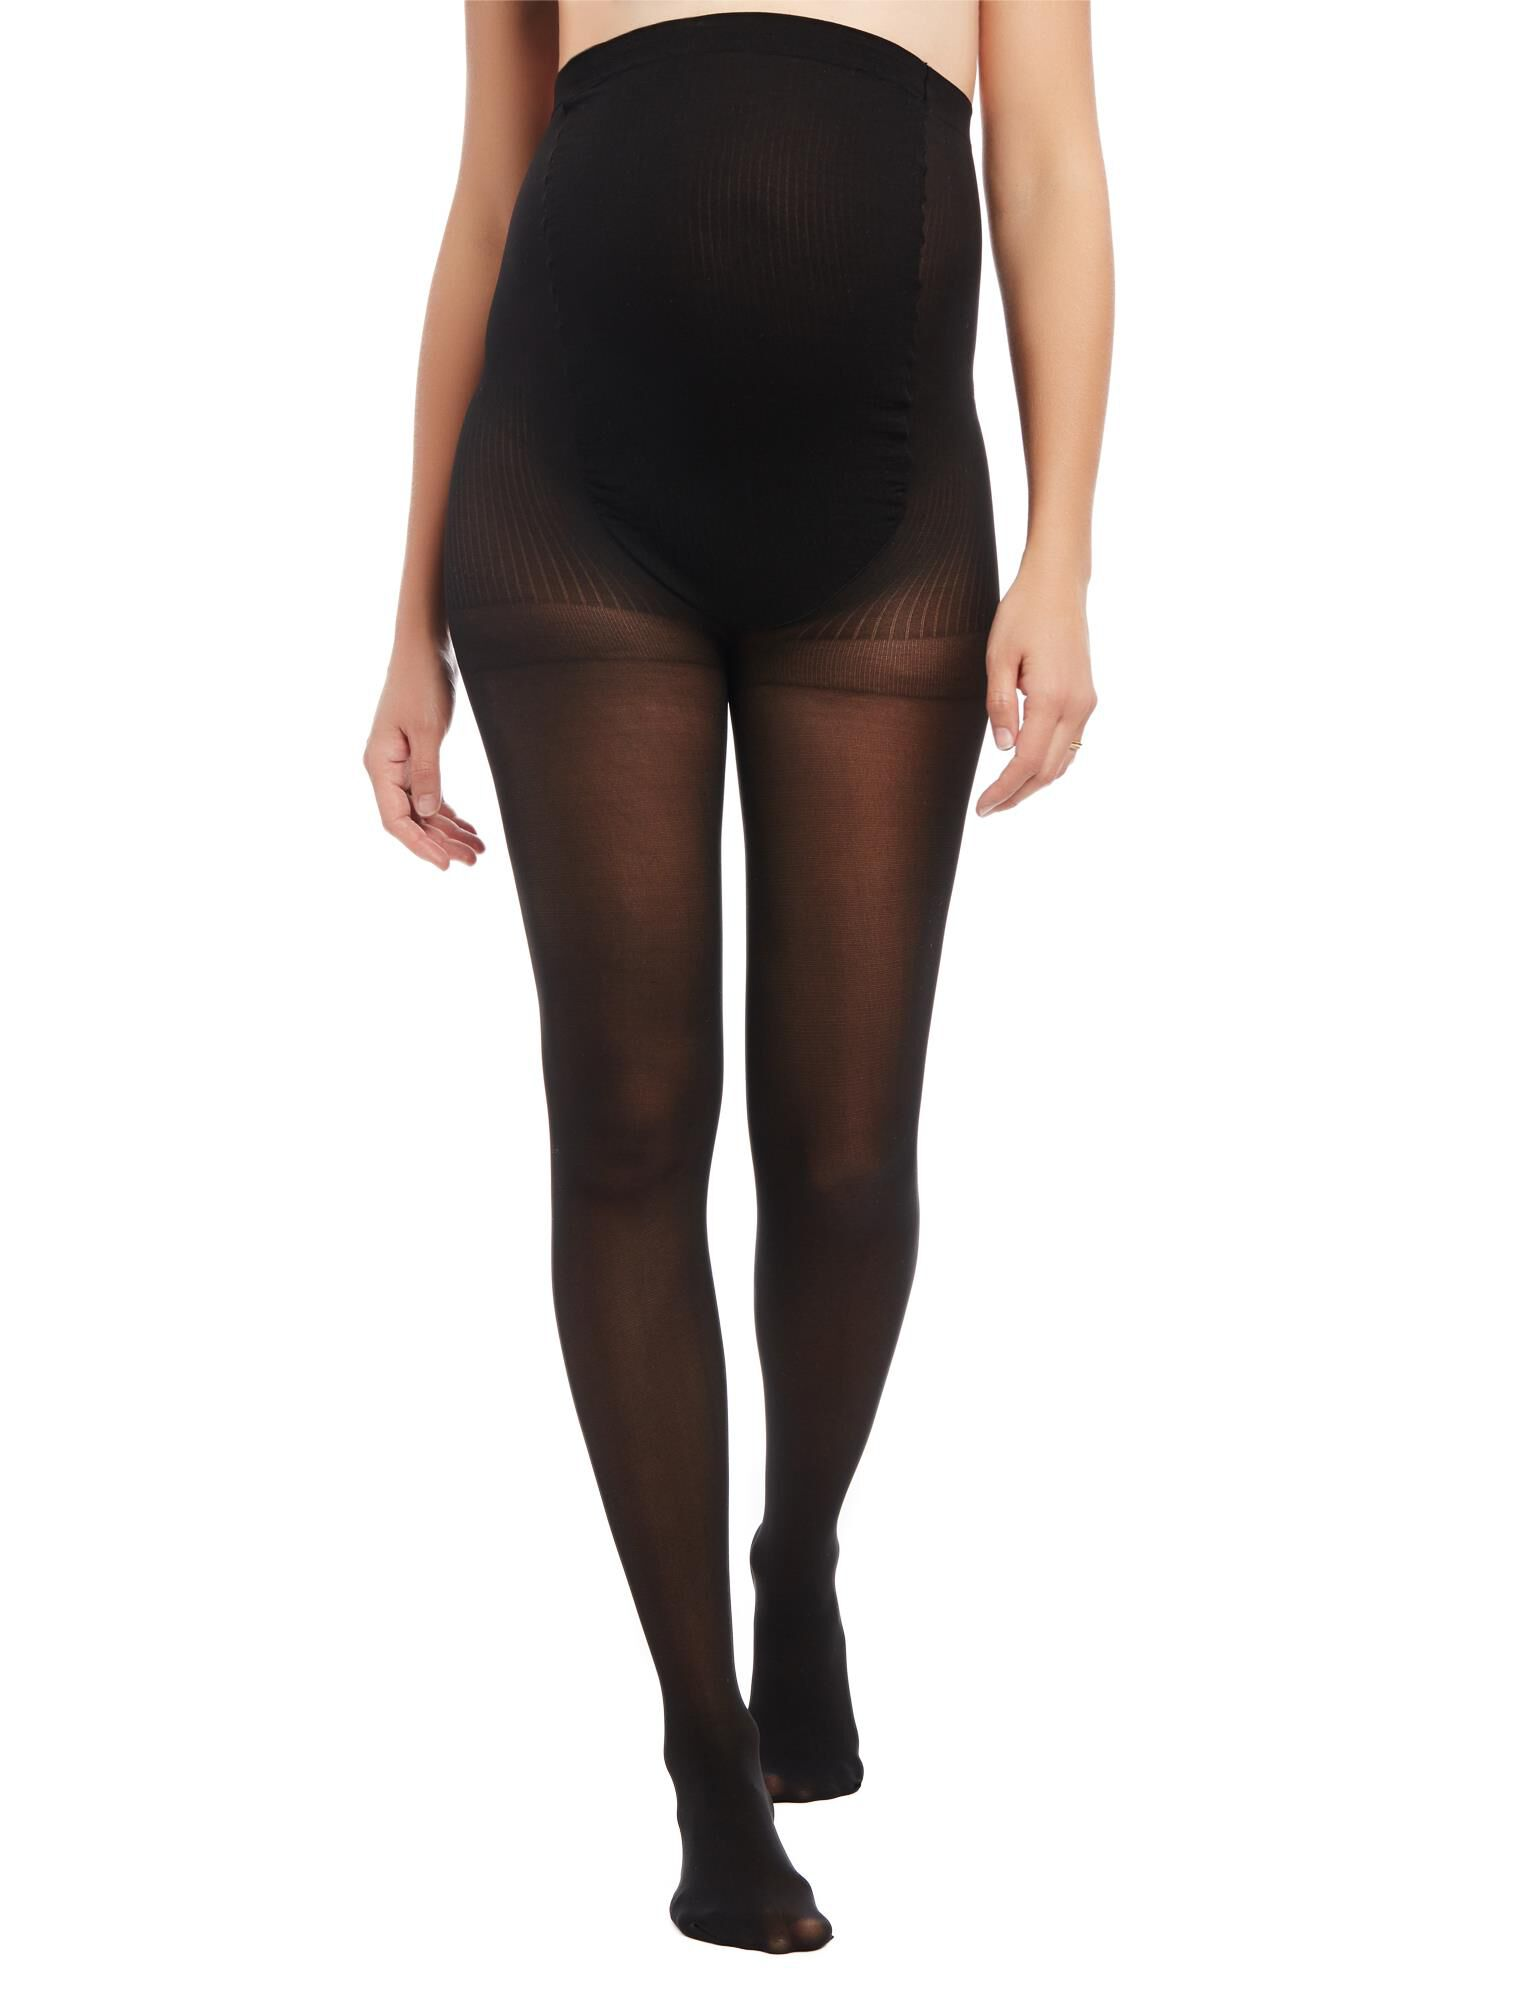 Sheer Light Compression Maternity Pantyhose